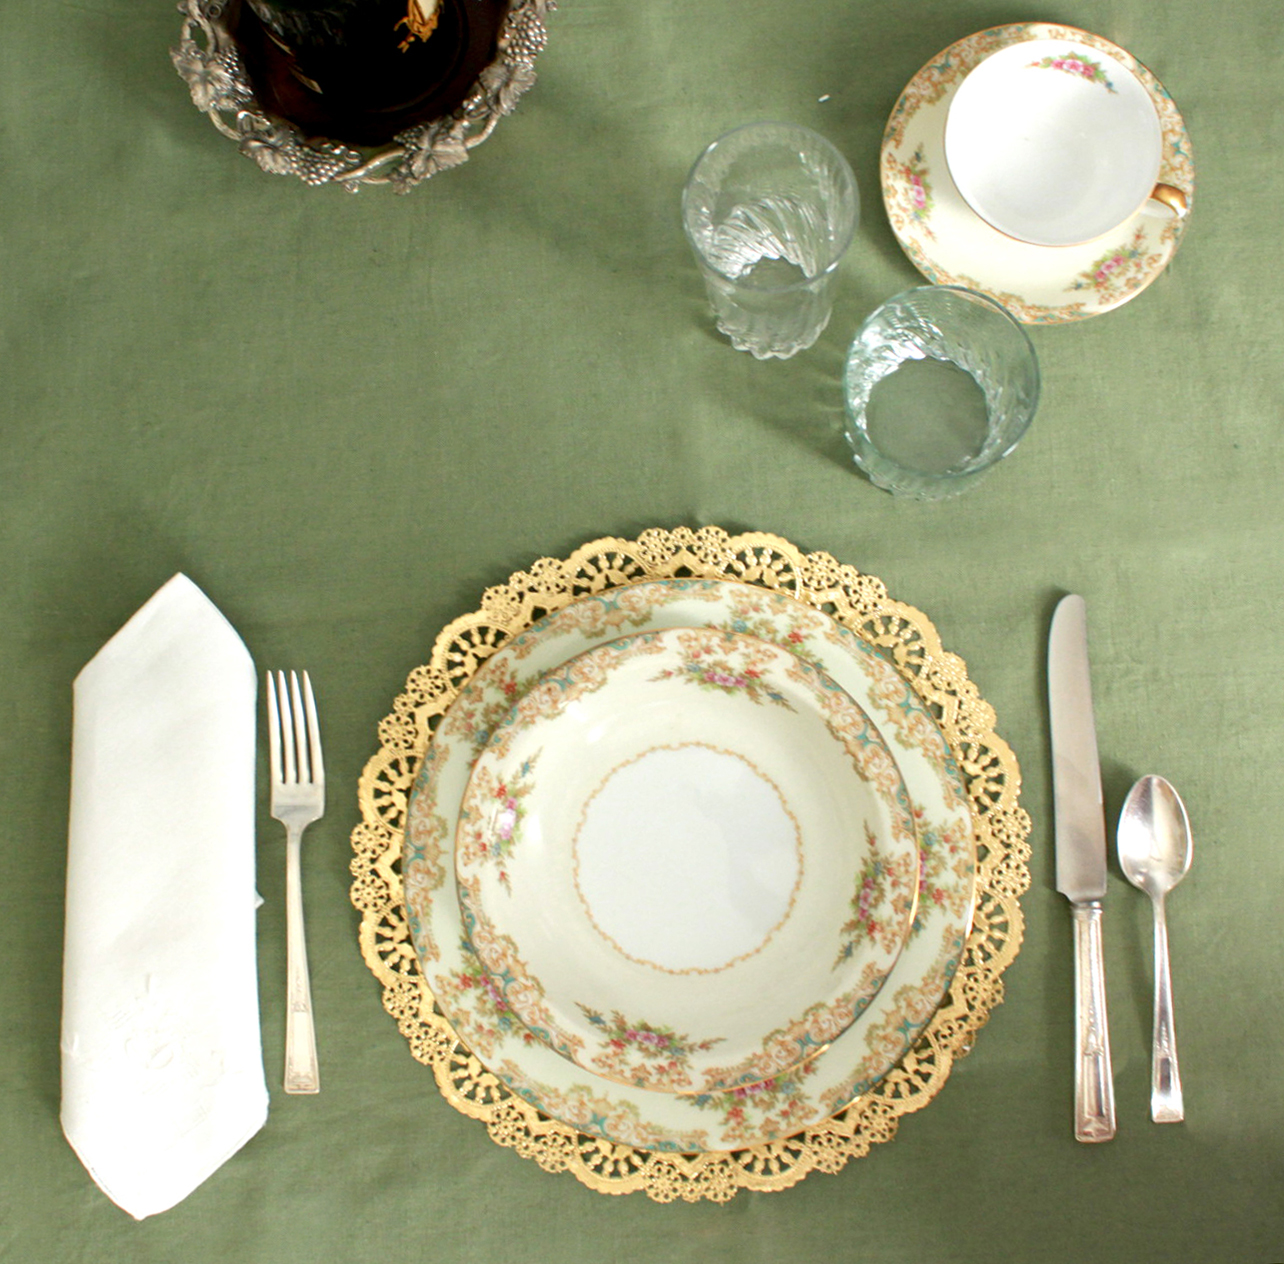 Doily chargers or placemats & Laurl Designs: Doily chargers or placemats